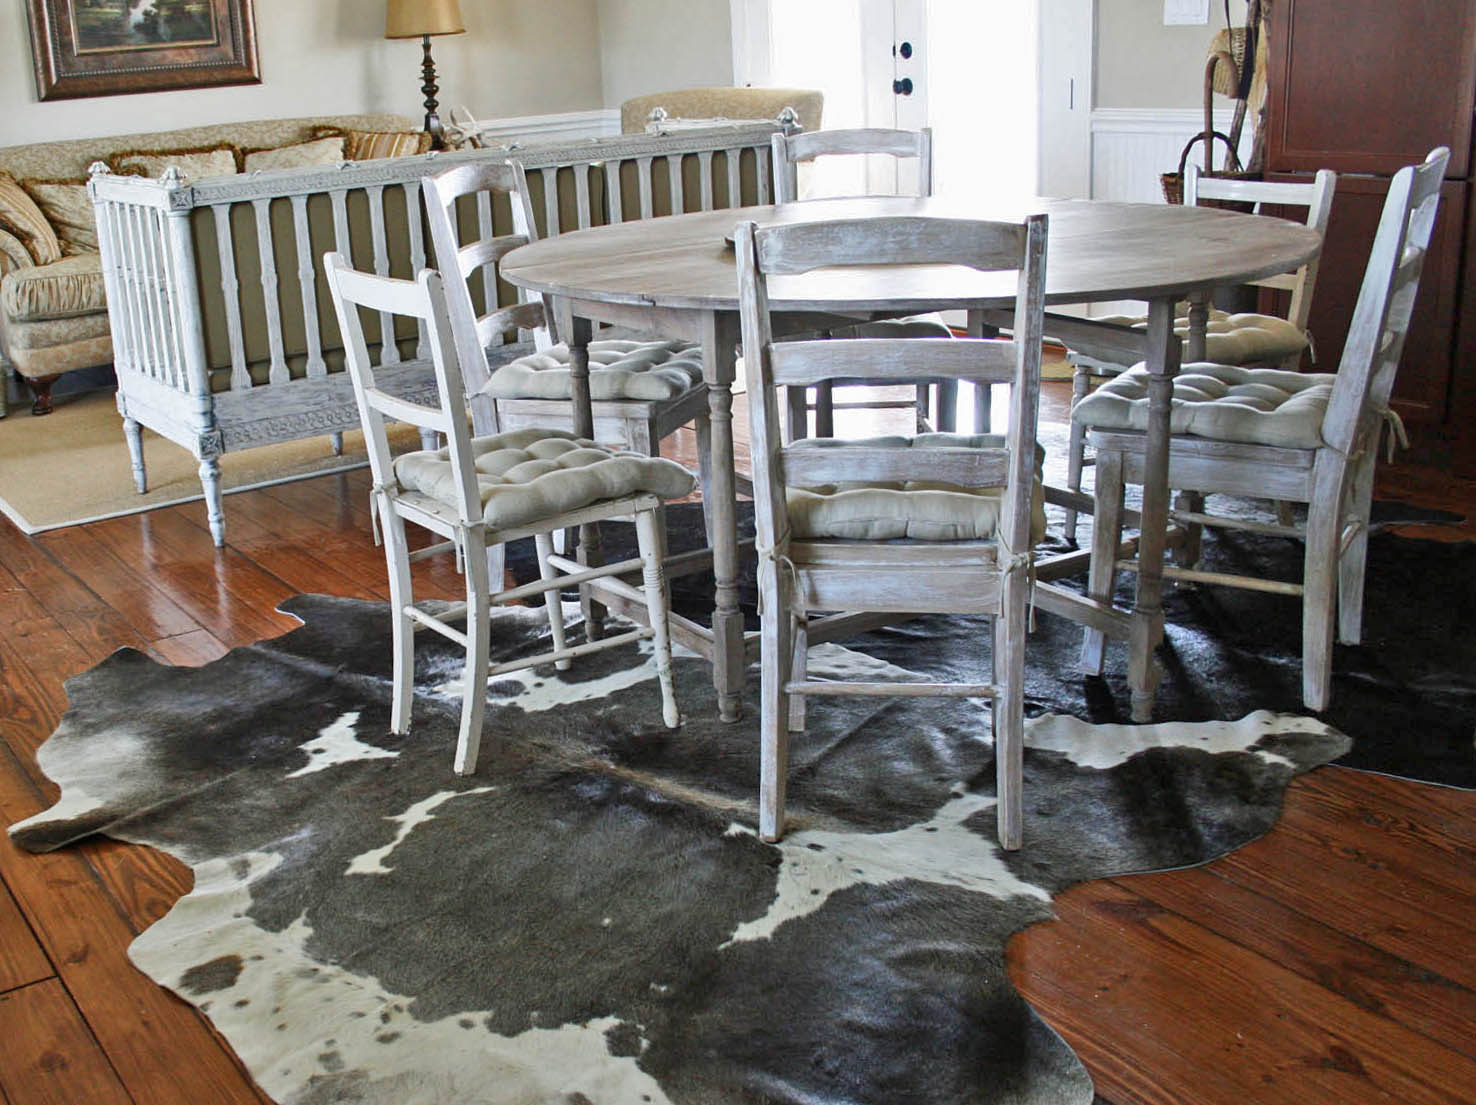 Ikea Cowhide Rug The Skinny On Decorating With Cowhide Rugs Cedar Hill Farmhouse